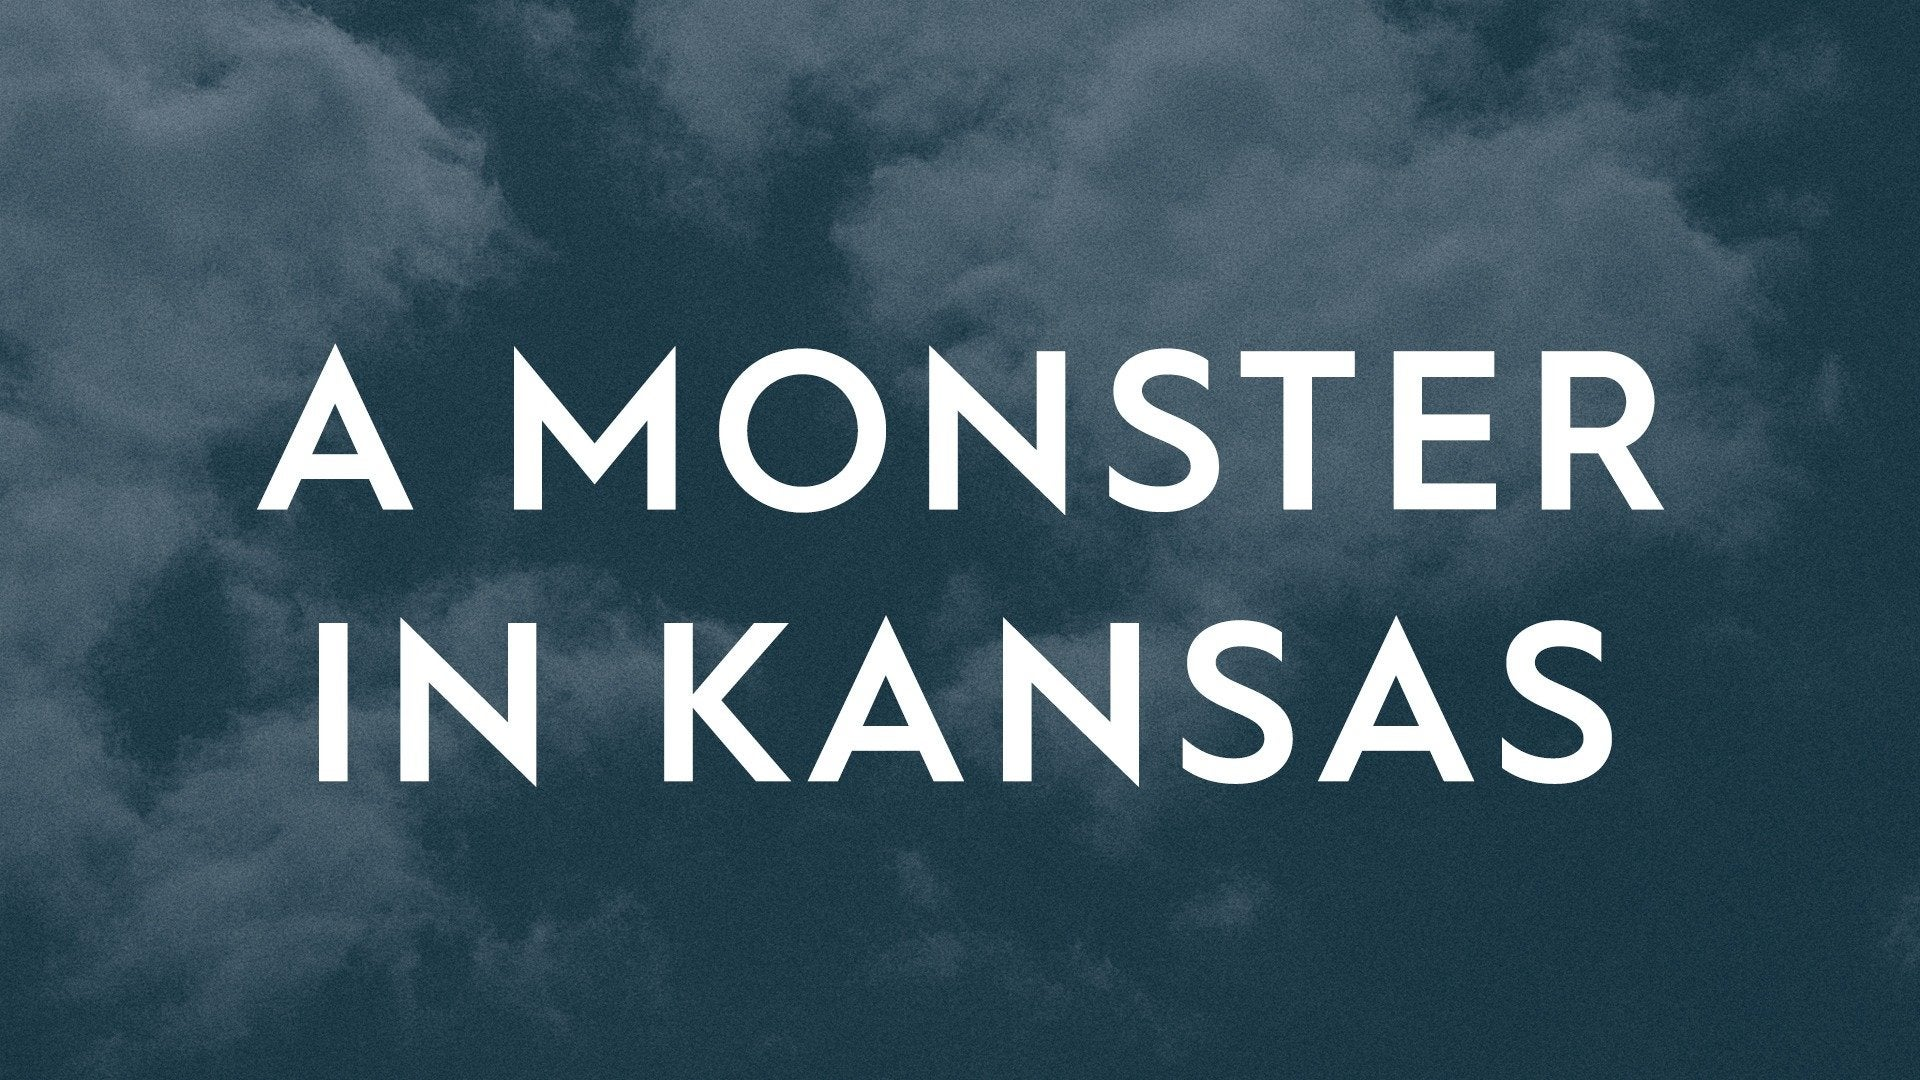 A Monster in Kansas